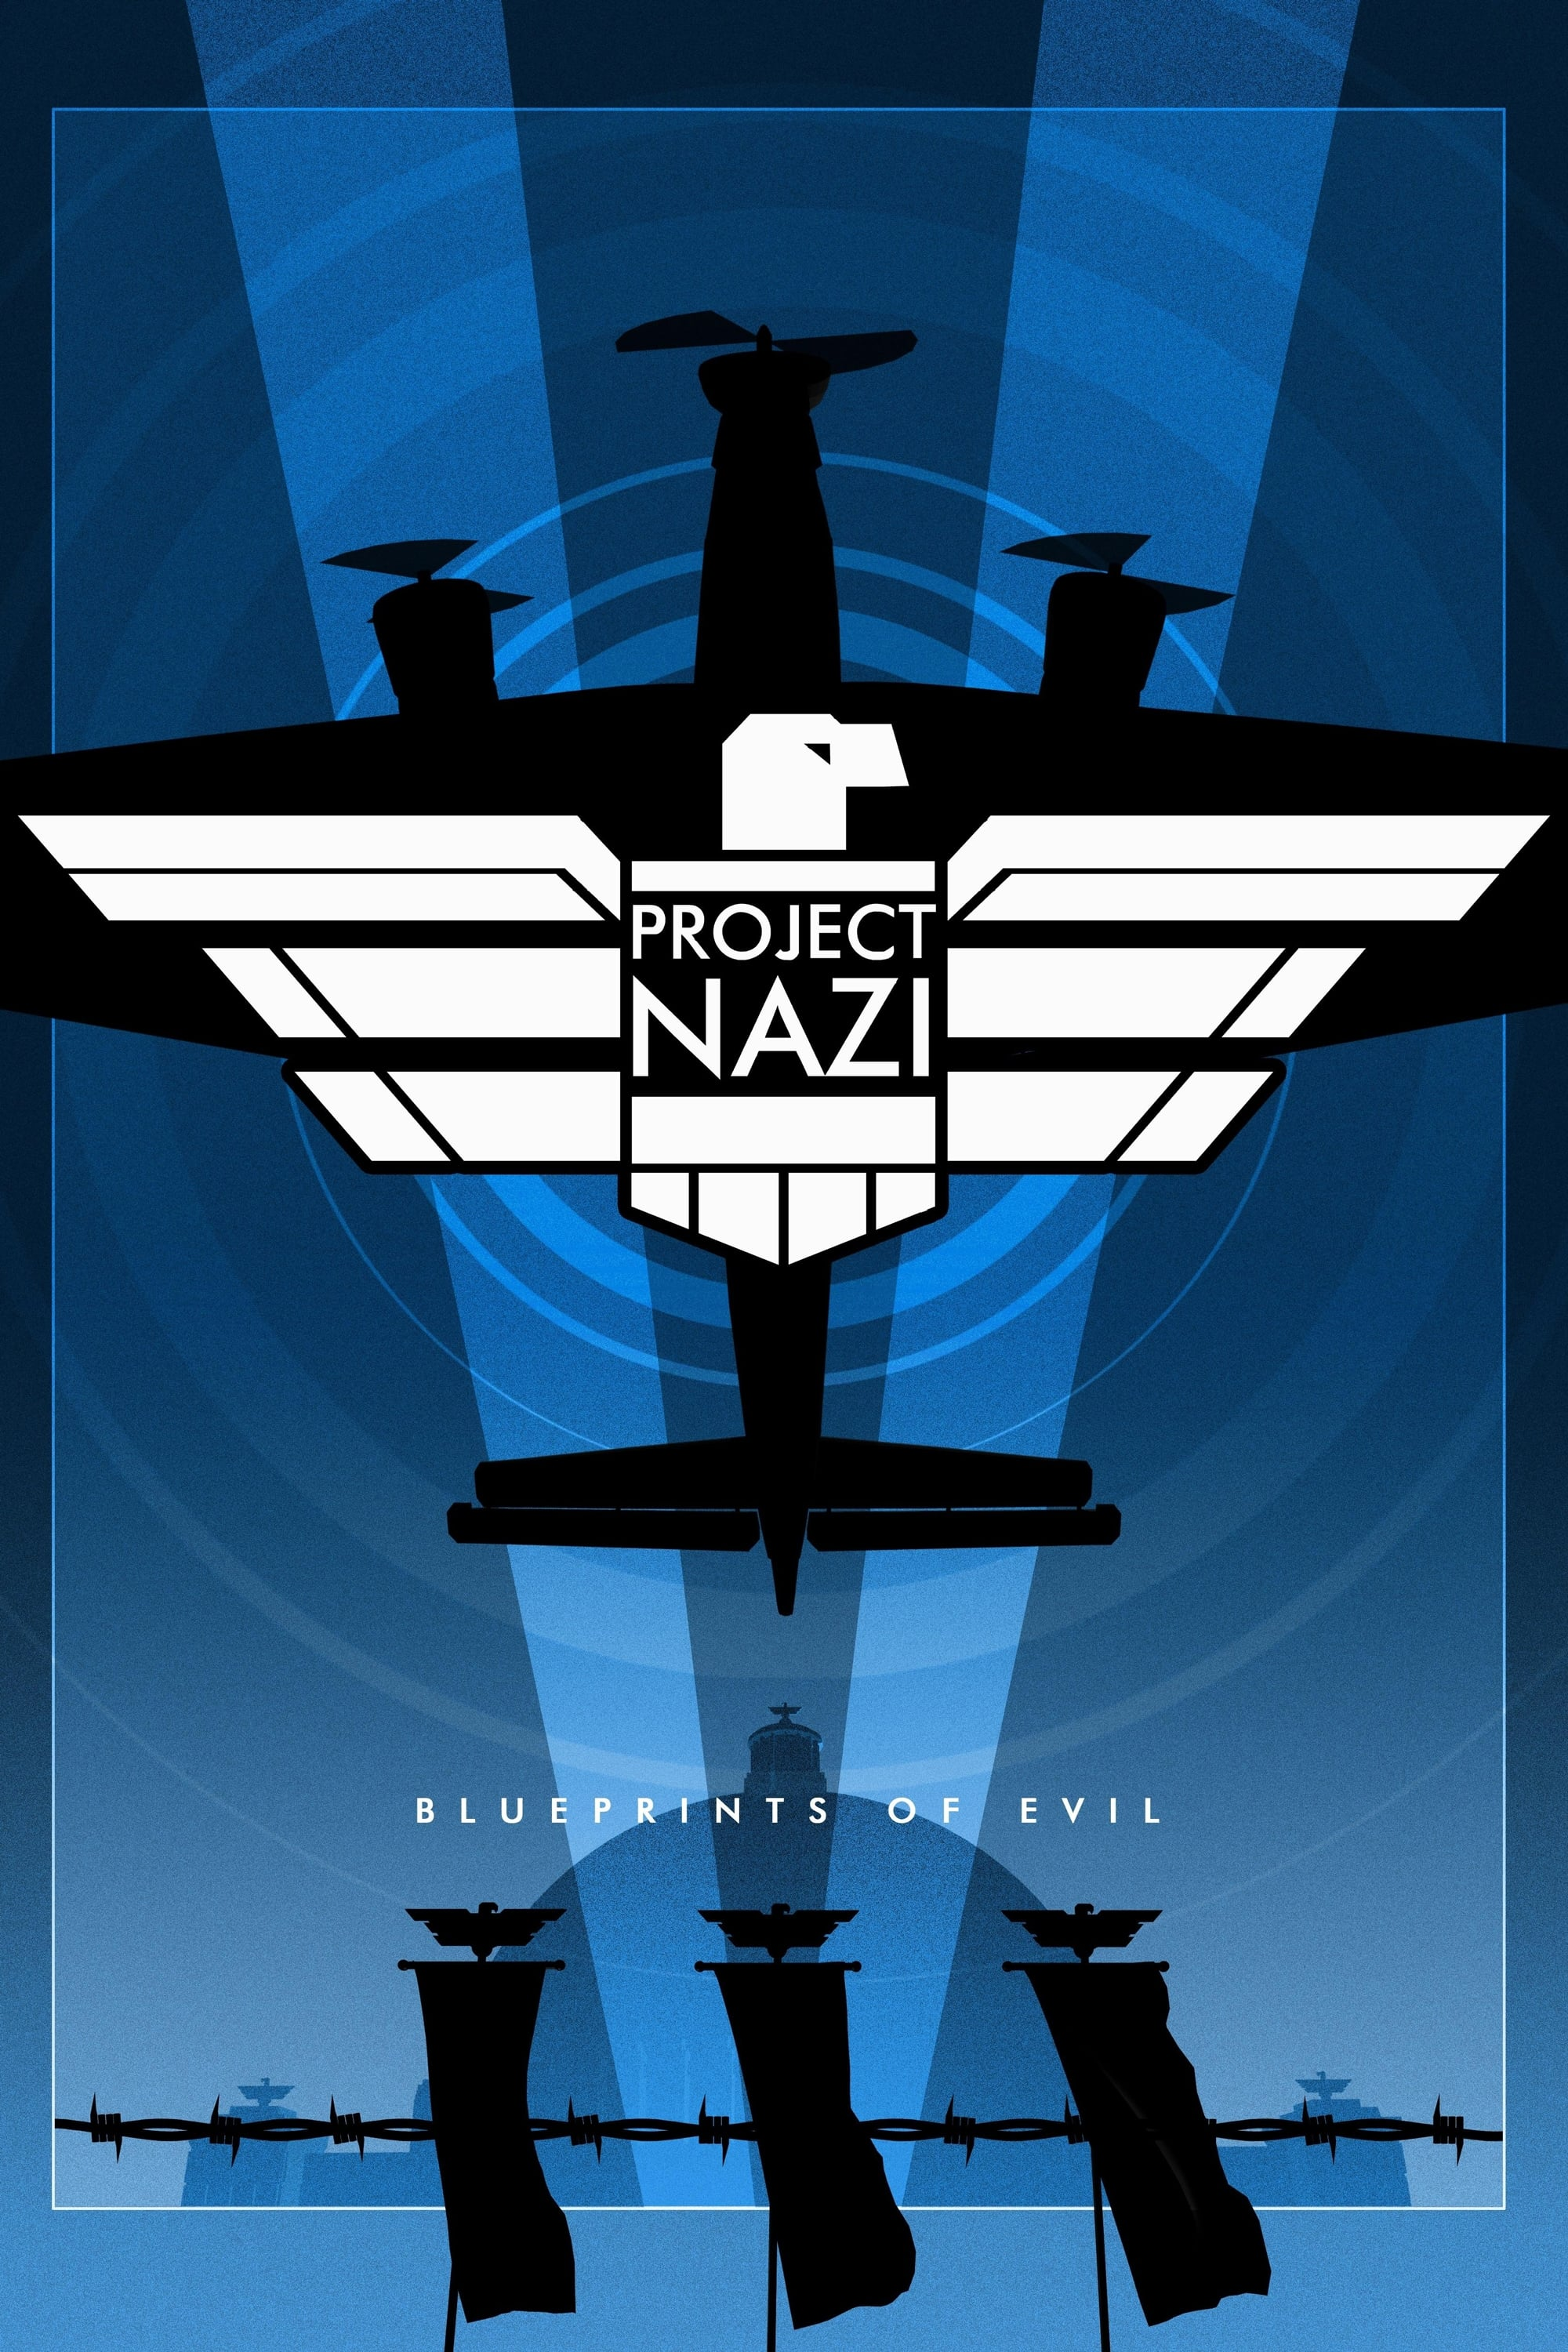 Project Nazi: The Blueprints of Evil series tv complet